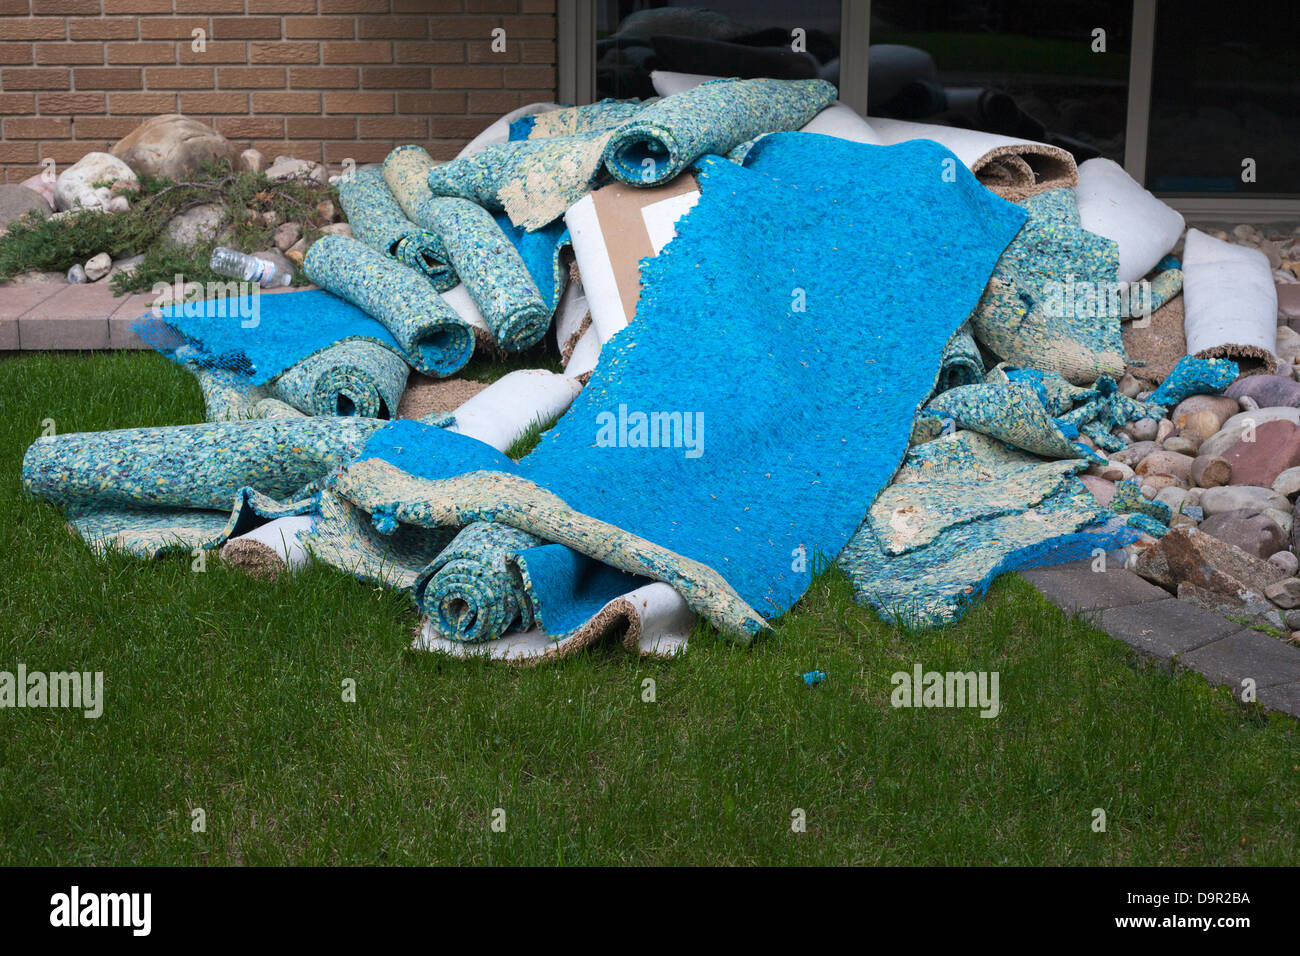 Waterlogged carpets pile up as cleanup begins after floodwaters recede from the Sunnyside neighbourhood of Calgary, - Stock Image